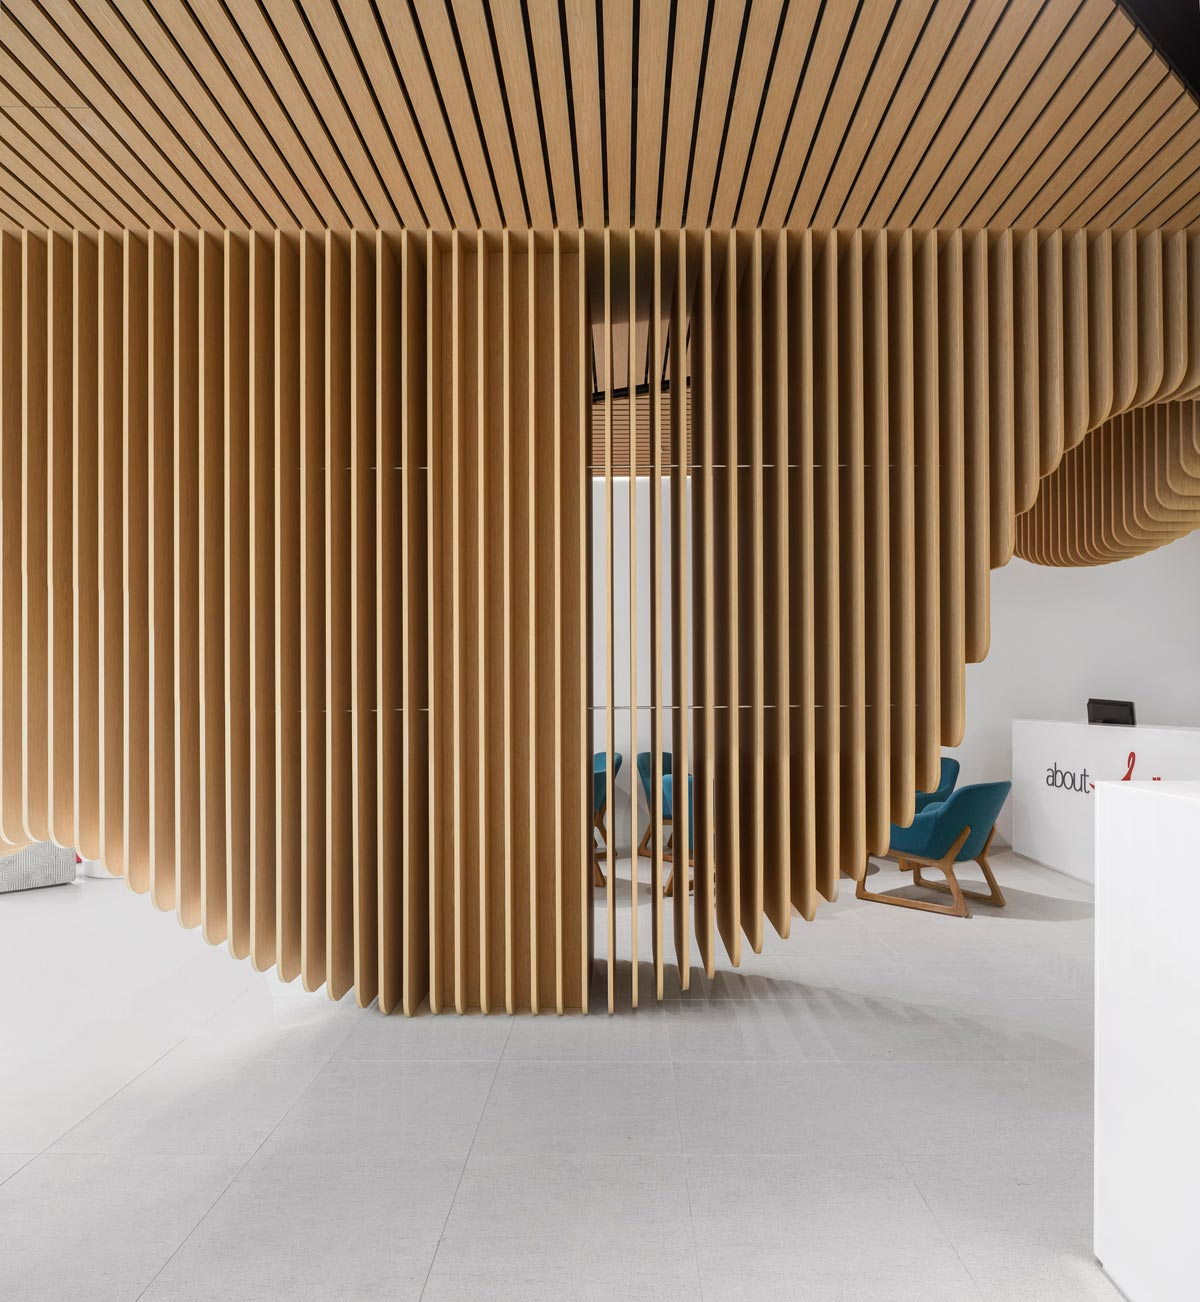 Care Implant Dentistry, Australia / Pedra Silva Architects